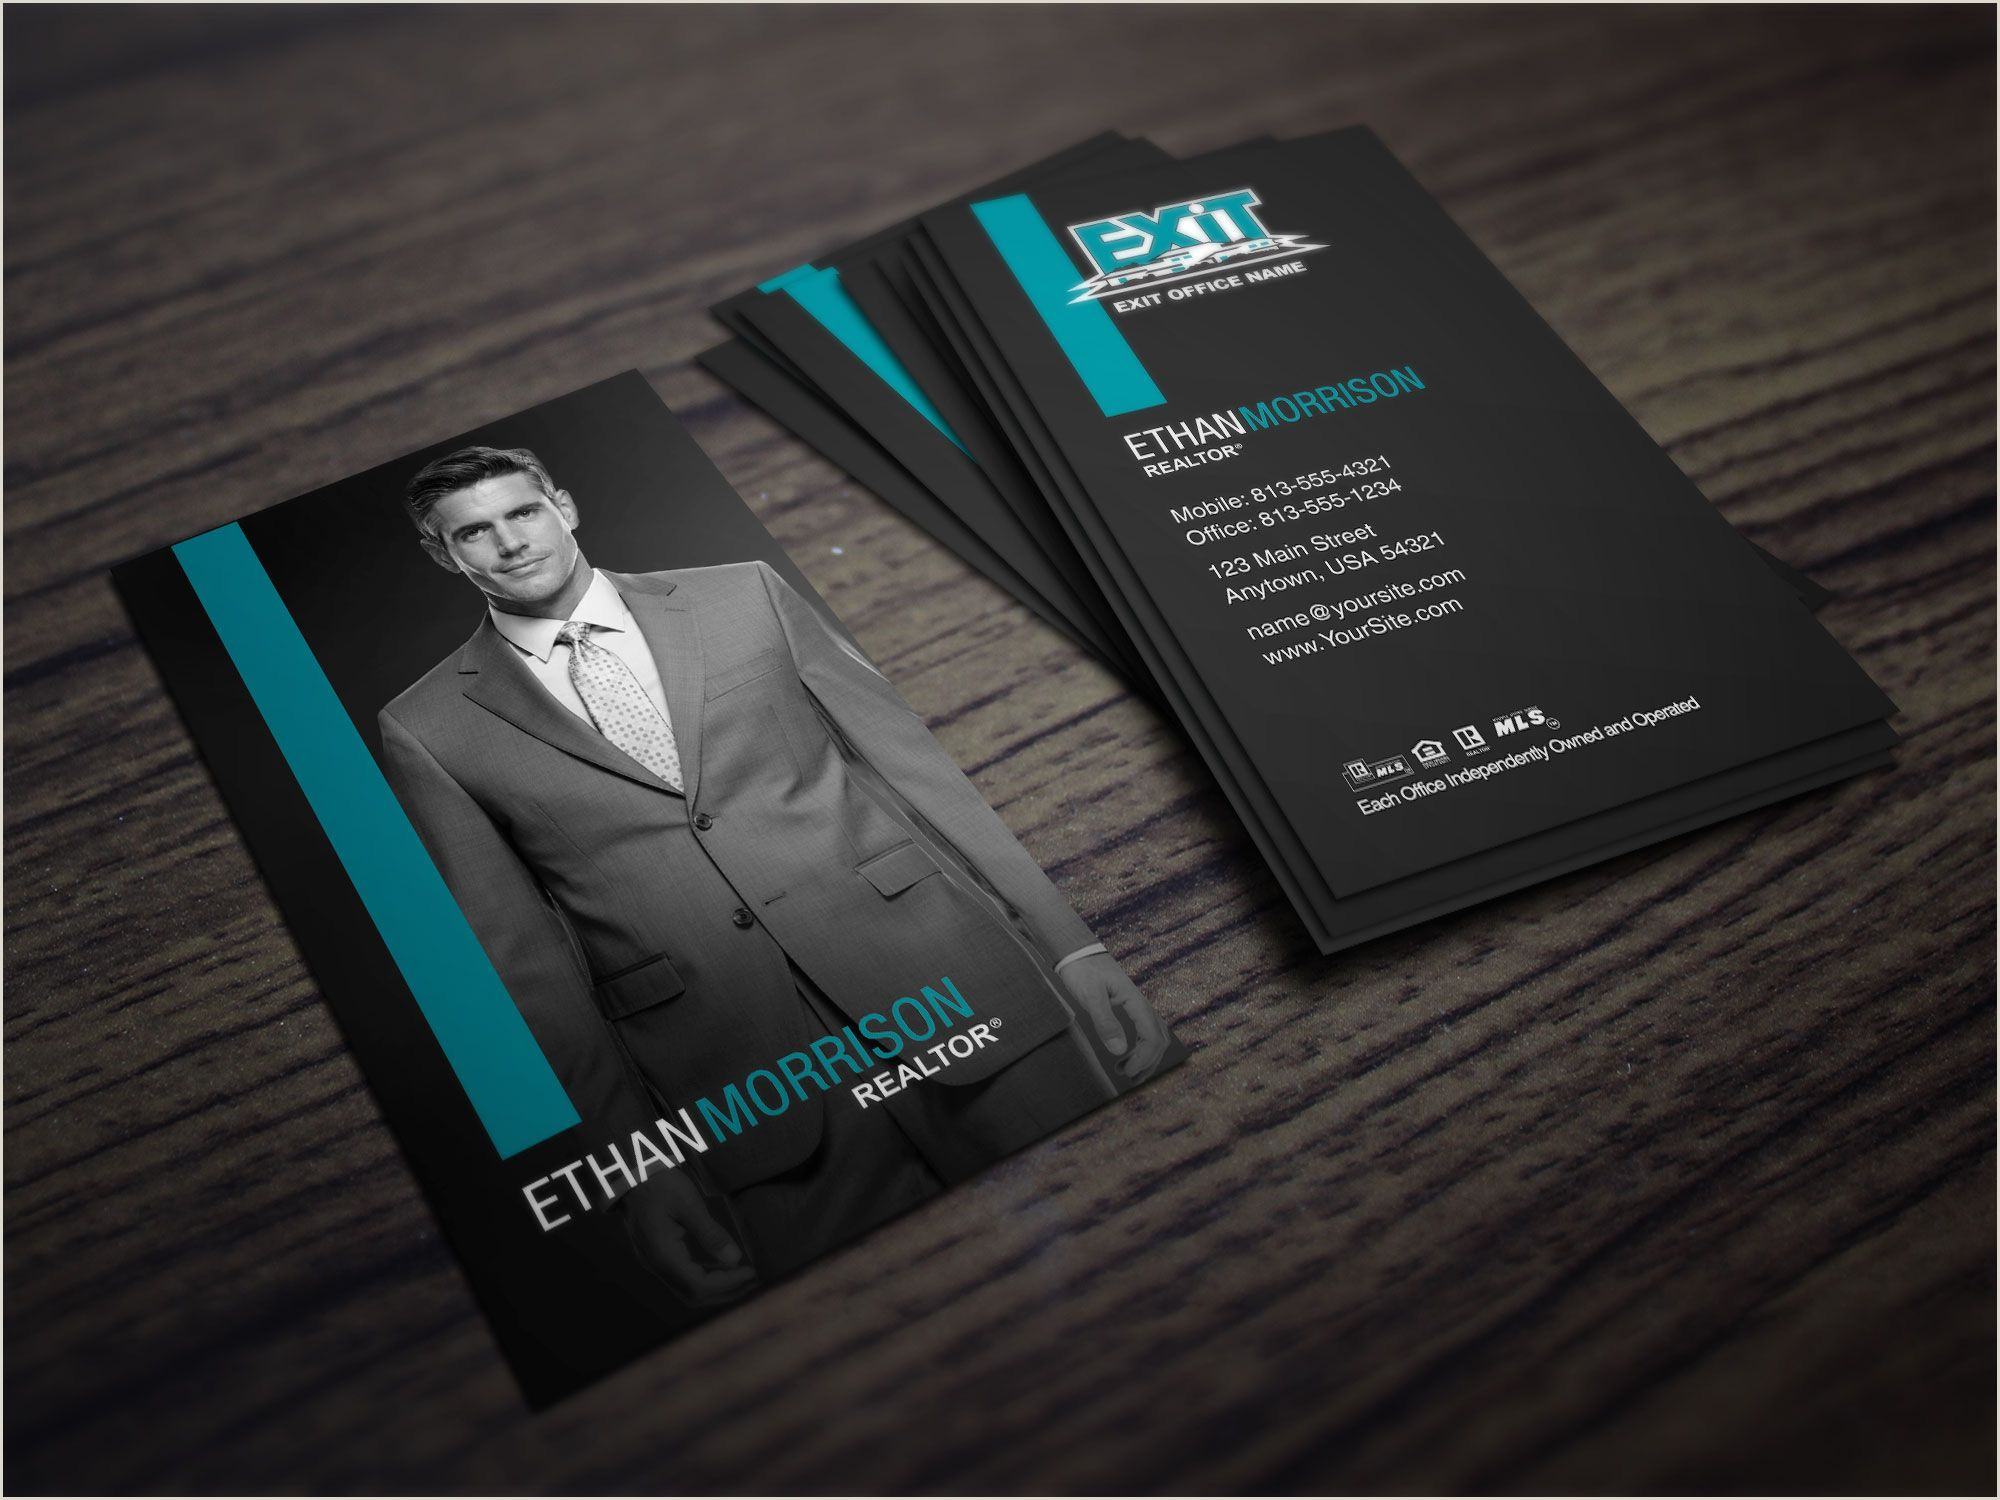 Cool Unique Business Cards For Realtors That Do Not Have To Much Stuff On It Clean Dark Exit Realty Business Card Design For Realtors